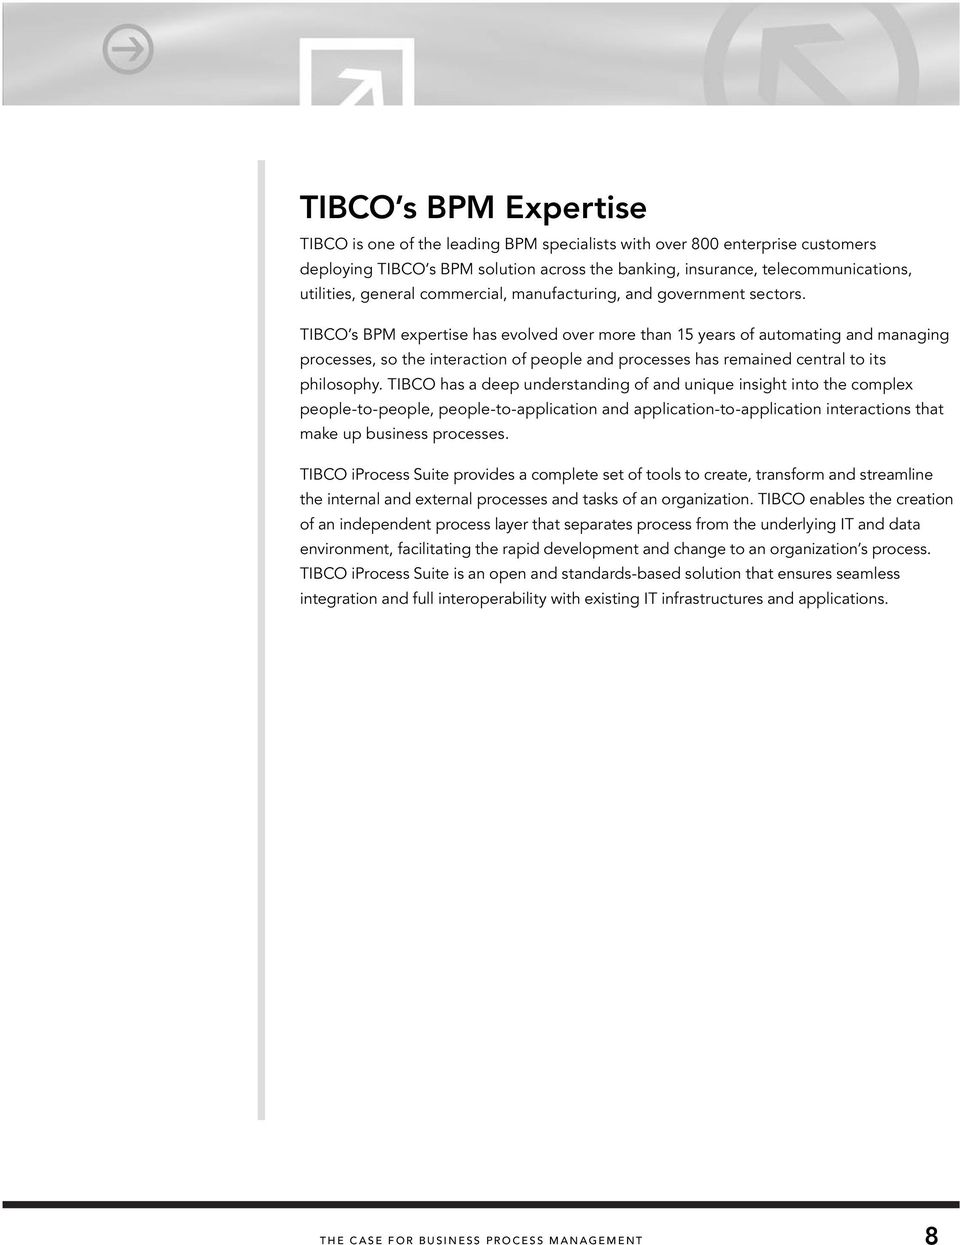 TIBCO s BPM expertise has evolved over more than 15 years of automating and managing processes, so the interaction of people and processes has remained central to its philosophy.